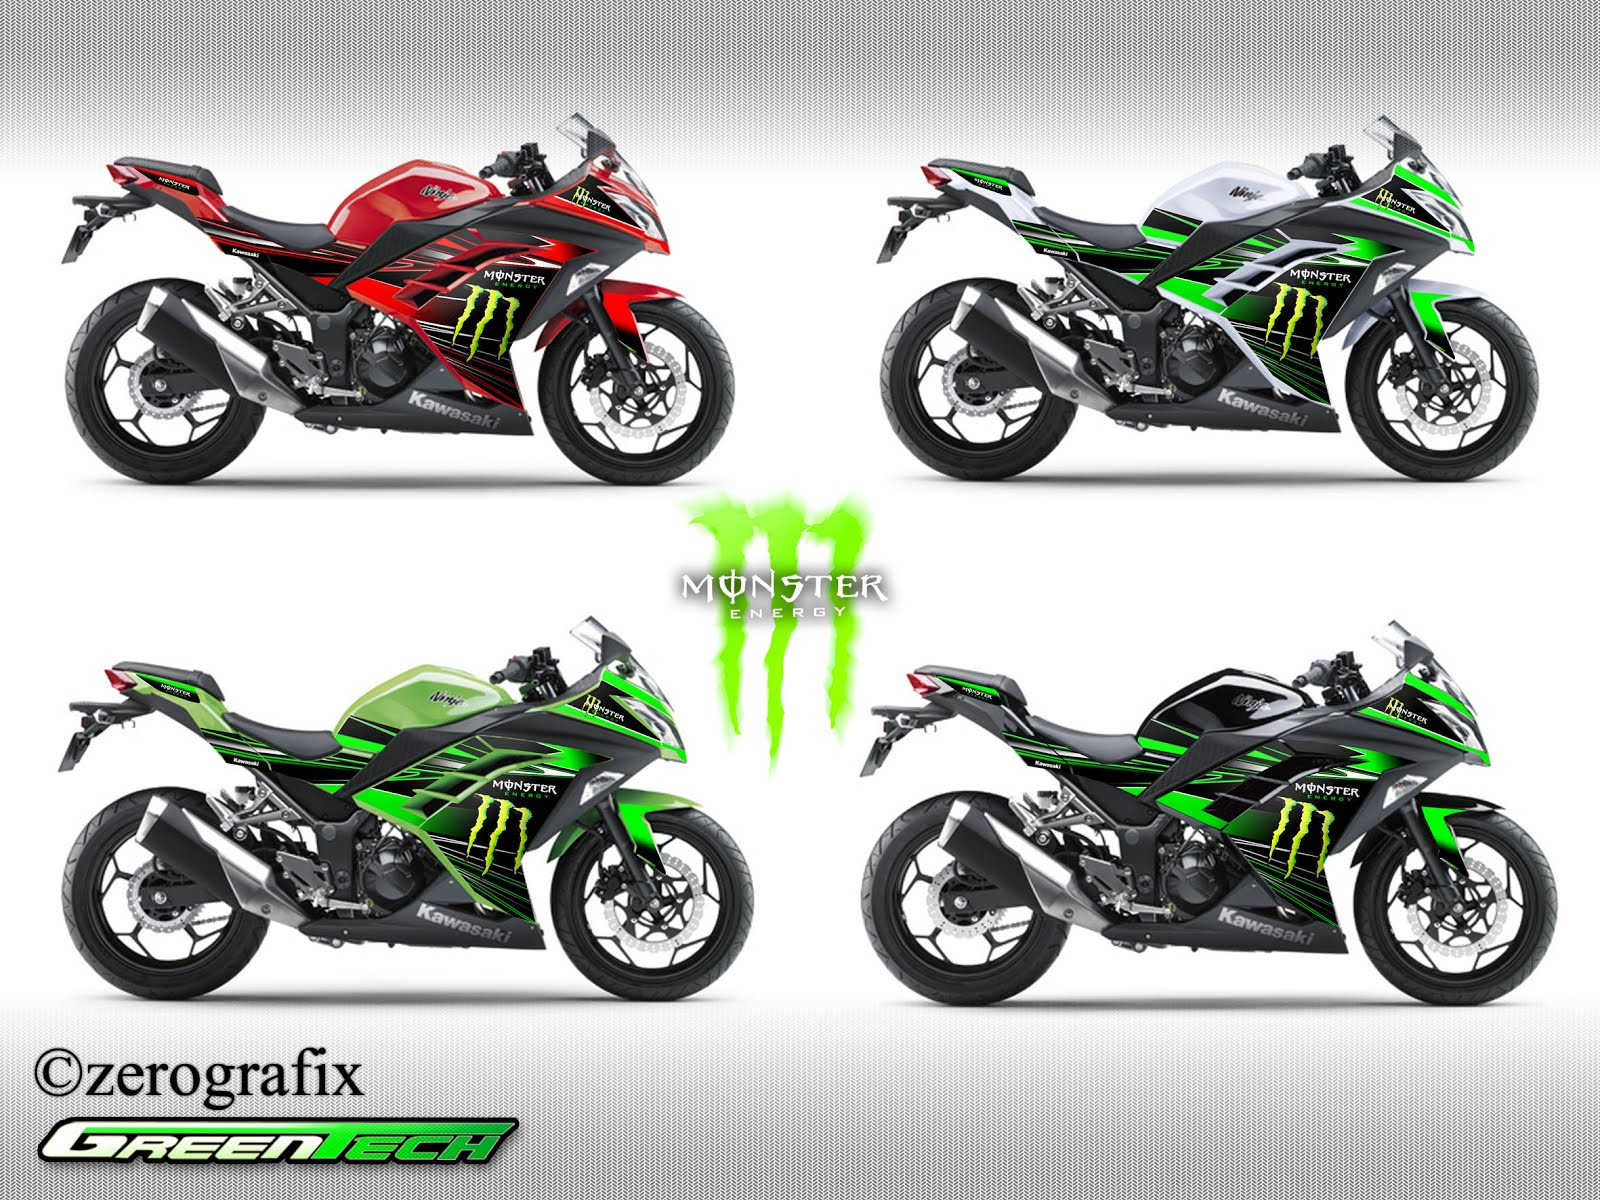 Performance and bodywork parts Ninja 250 by Joo0 [Pindahan dr KASK*S.com] Banner%2Bmonster%2Benergy%2Bnew%2Bcopy